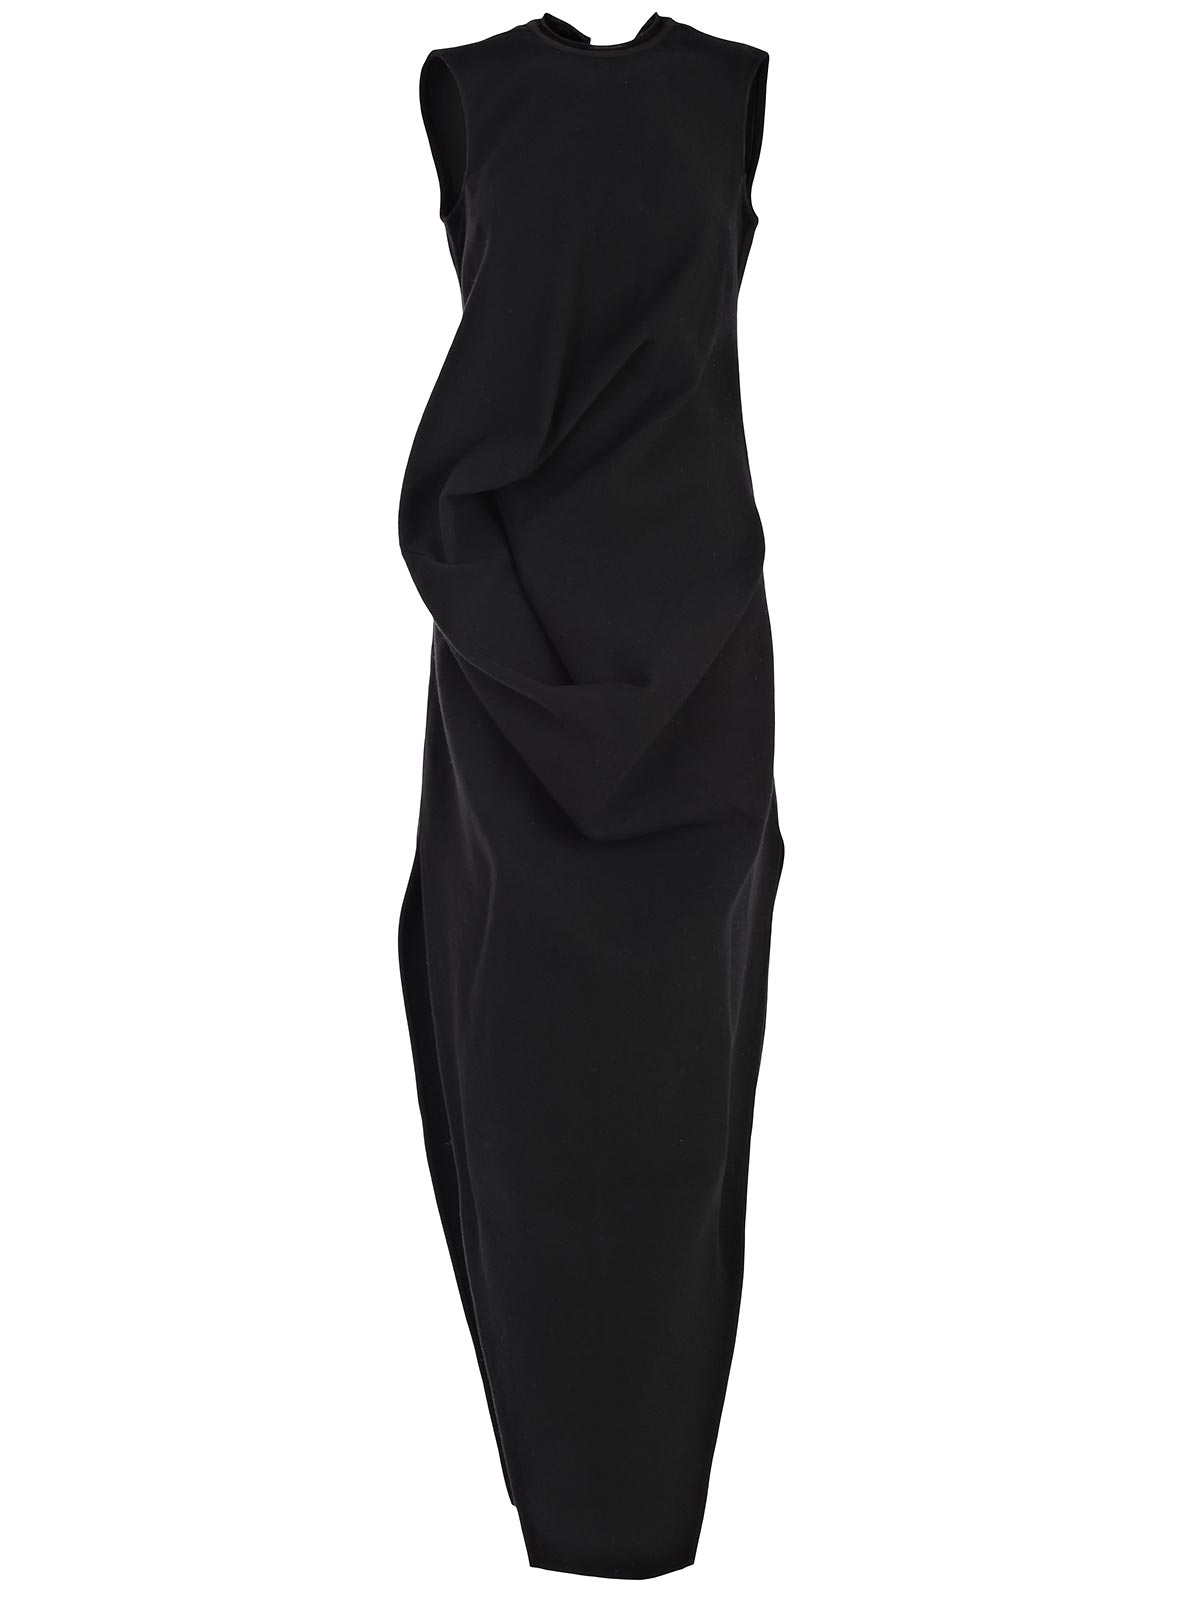 Picture of RICK OWENS DRESS